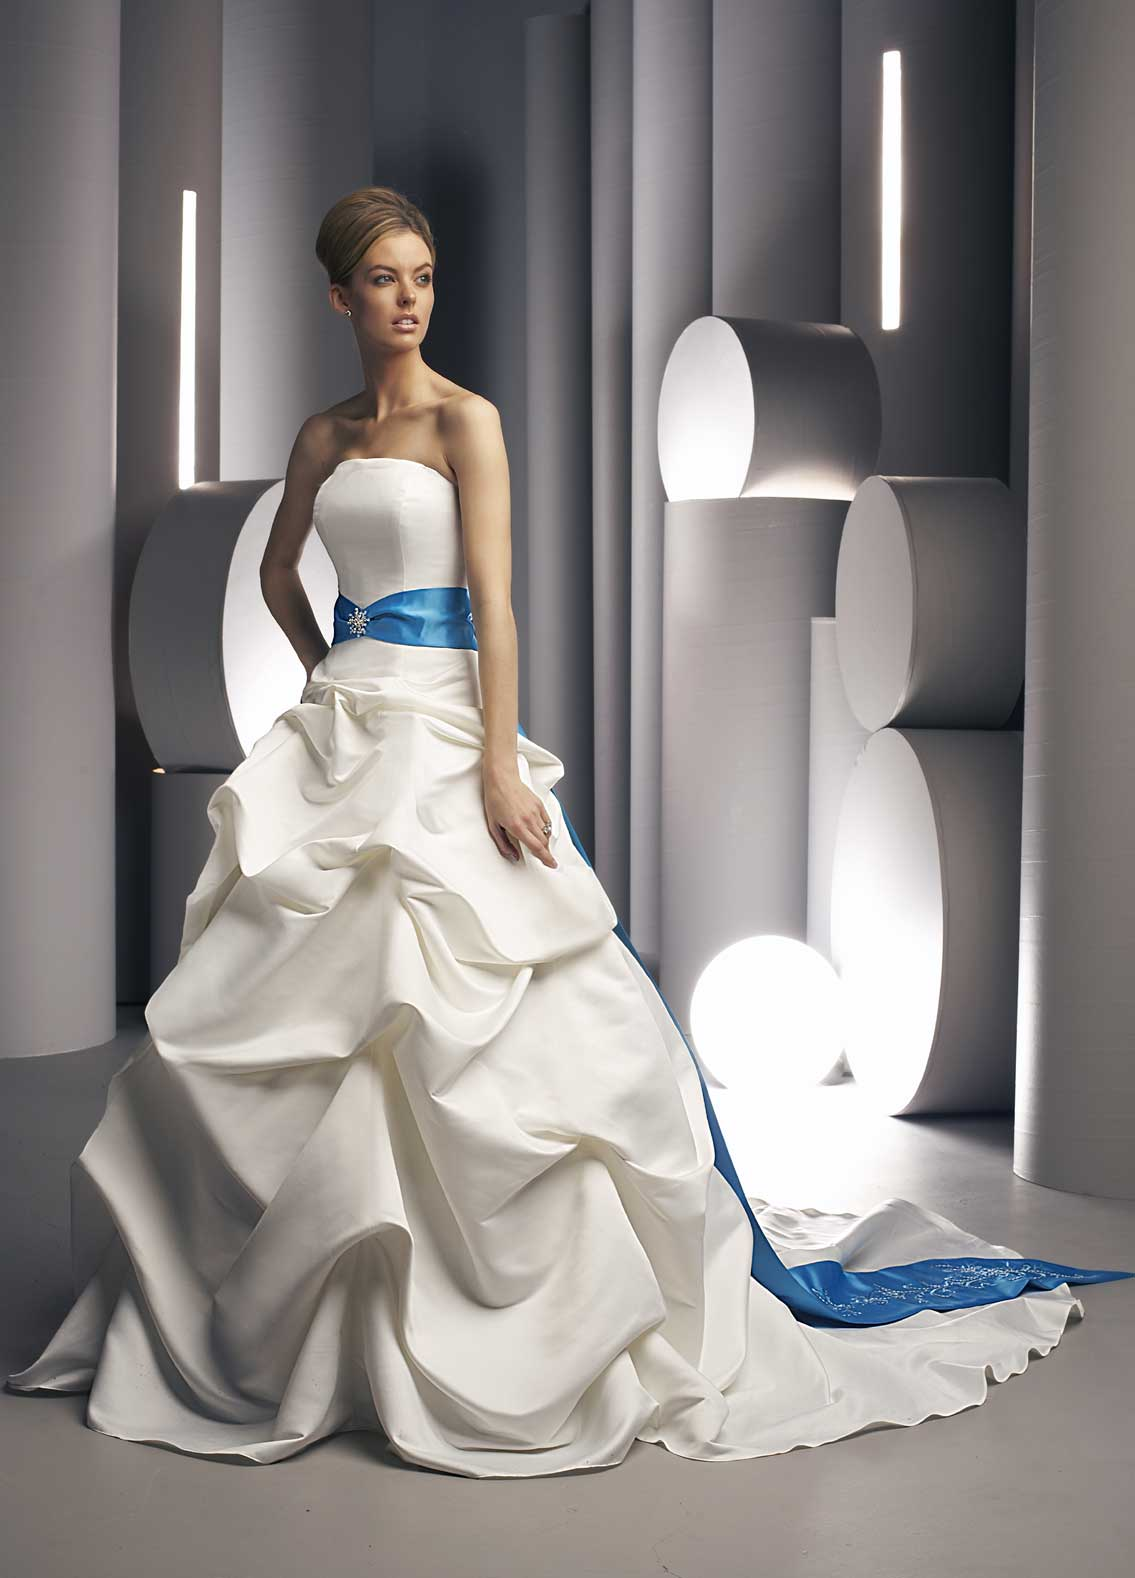 White Wedding Gown with blue sash